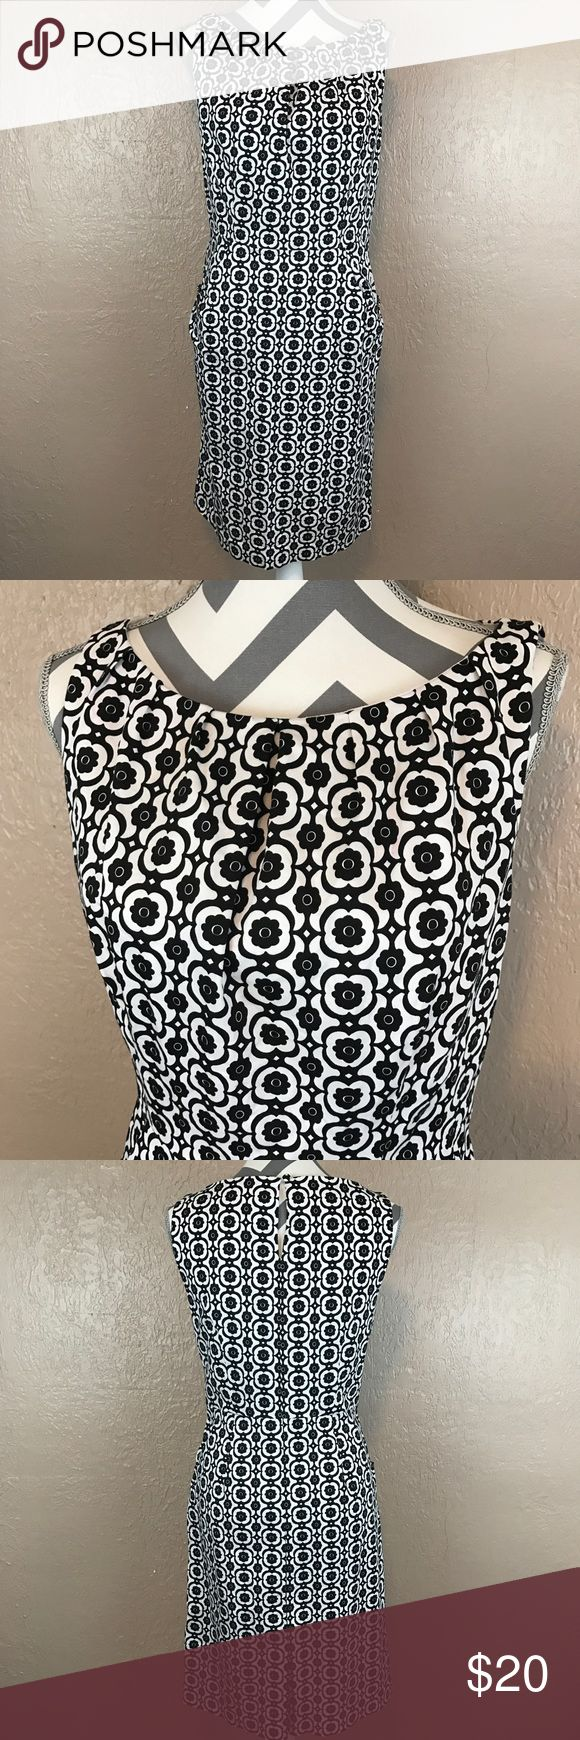 Nine West Sleeveless Sheath Dress Excellent condition. Black and white pattern with pleated neckline and front pockets. Lined top. Side zip. Keyhole back with button. Back skirt slit. Women's 12. Smoke free home. Ships next day! ❤️ accepting offers and bundle discounts ❤️ Nine West Dresses